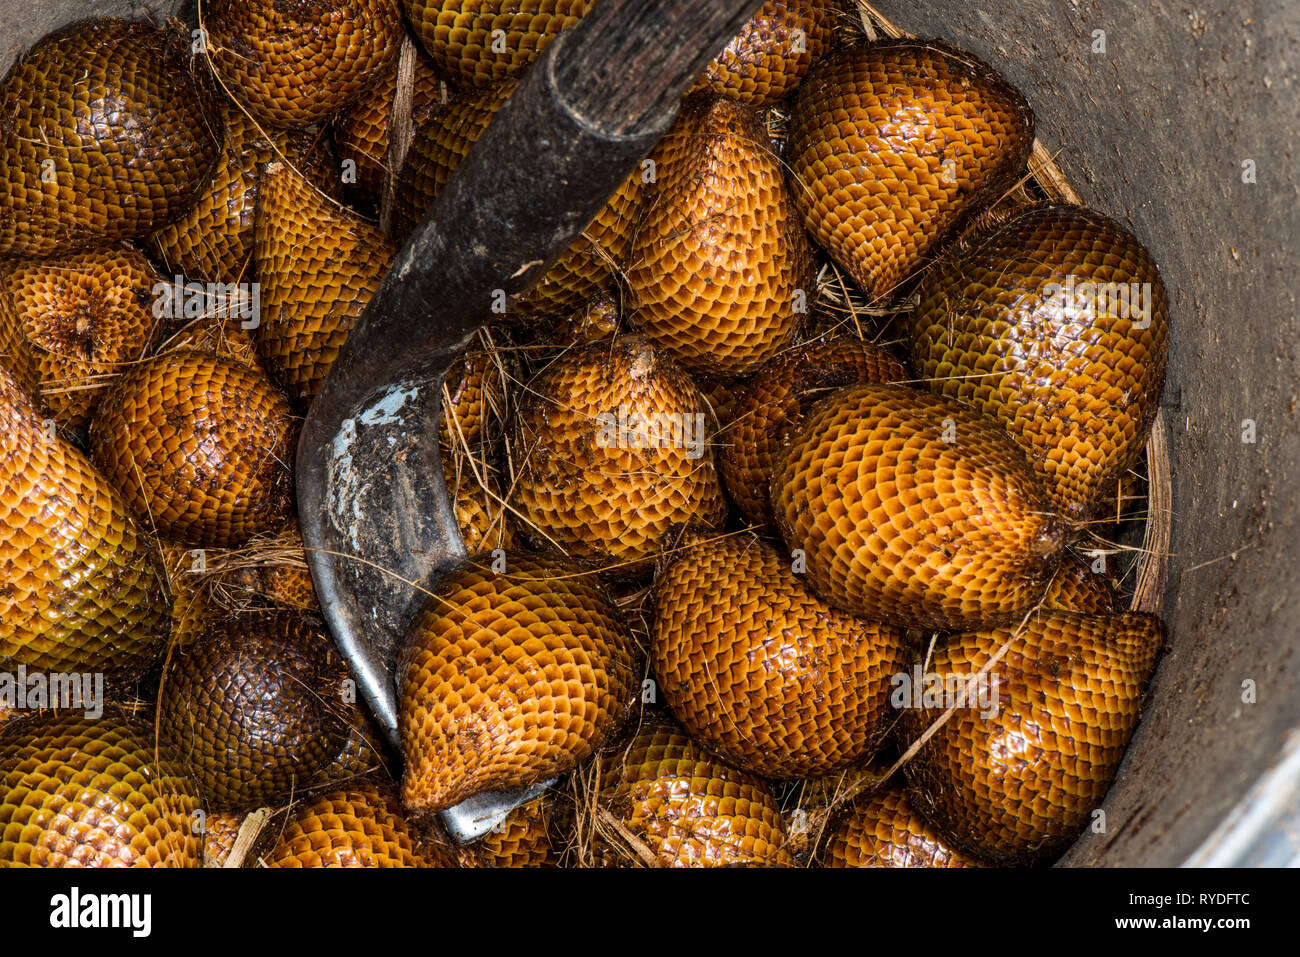 Salak (Salacca zalacca) is a species of palm tree native to Java and Sumatra in Indonesia. It is cultivated in other regions of Indonesia as a food cr - Stock Image